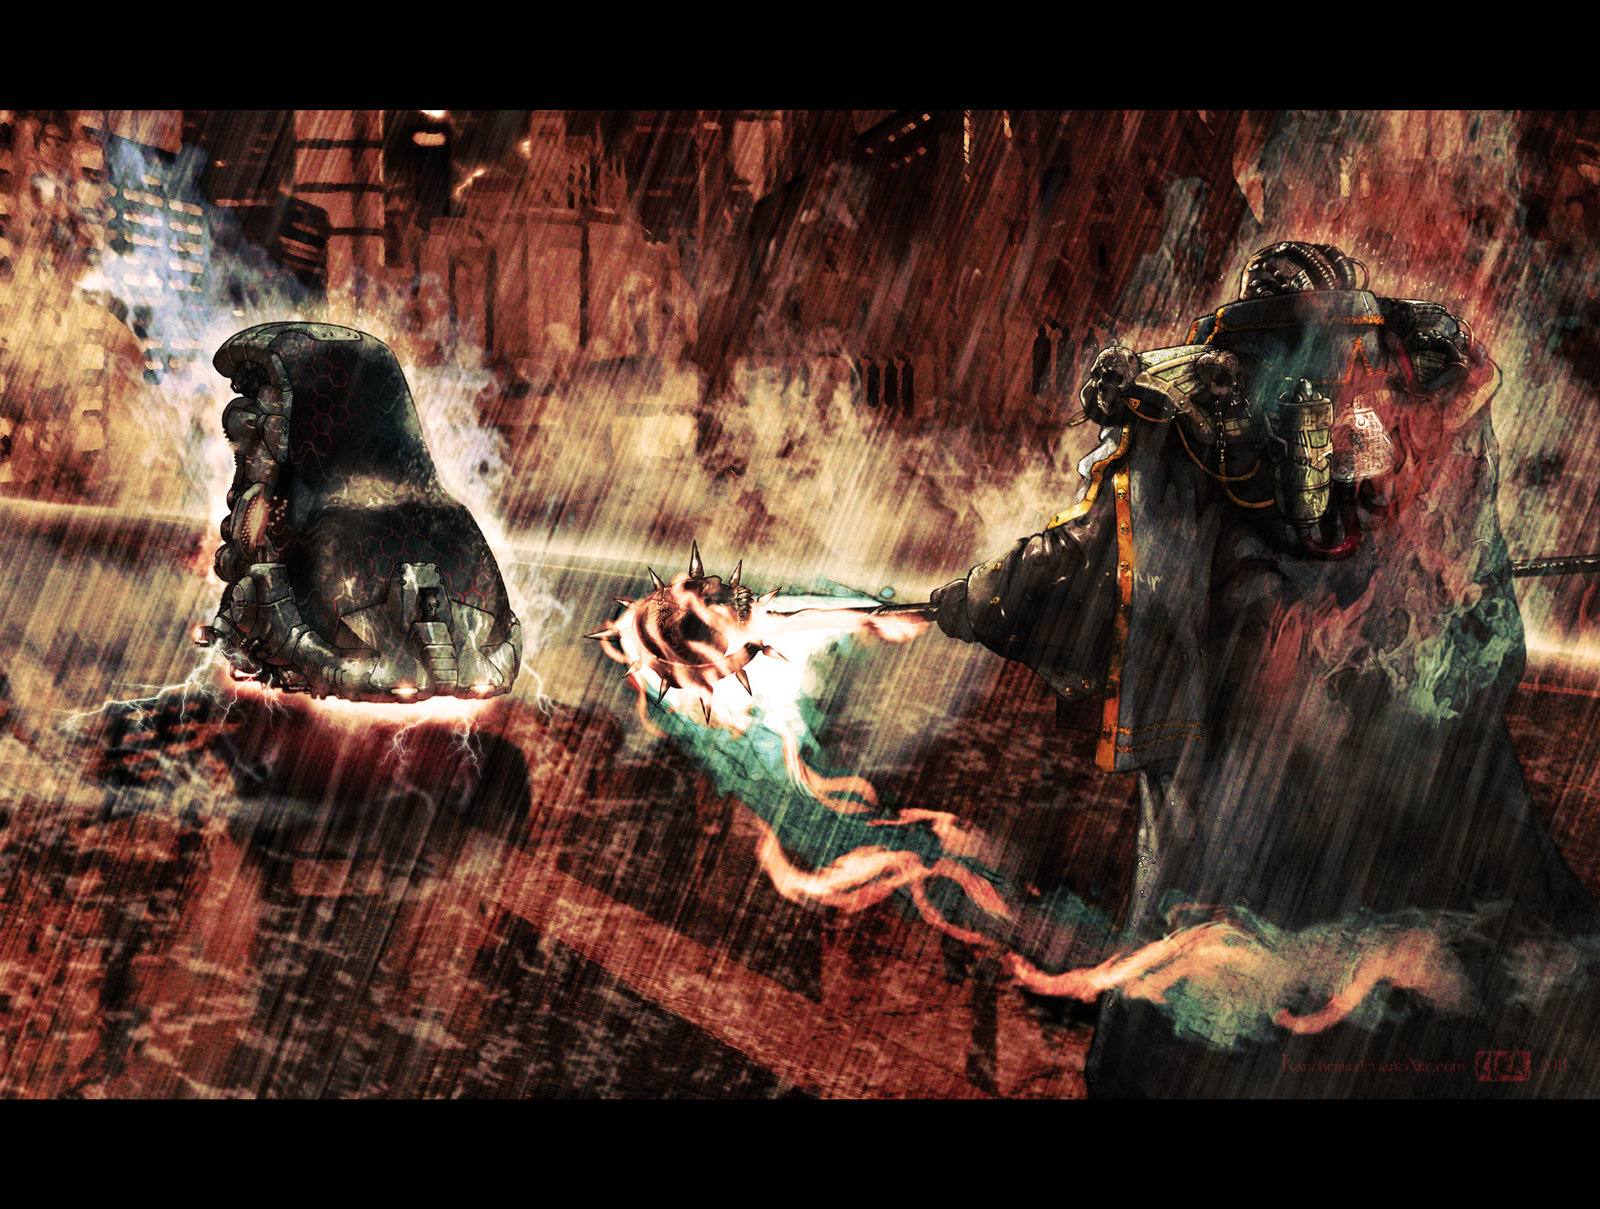 warhammer_40k_tribute_holy_inquisitors_by_kanthesis-d3gvqap.jpg